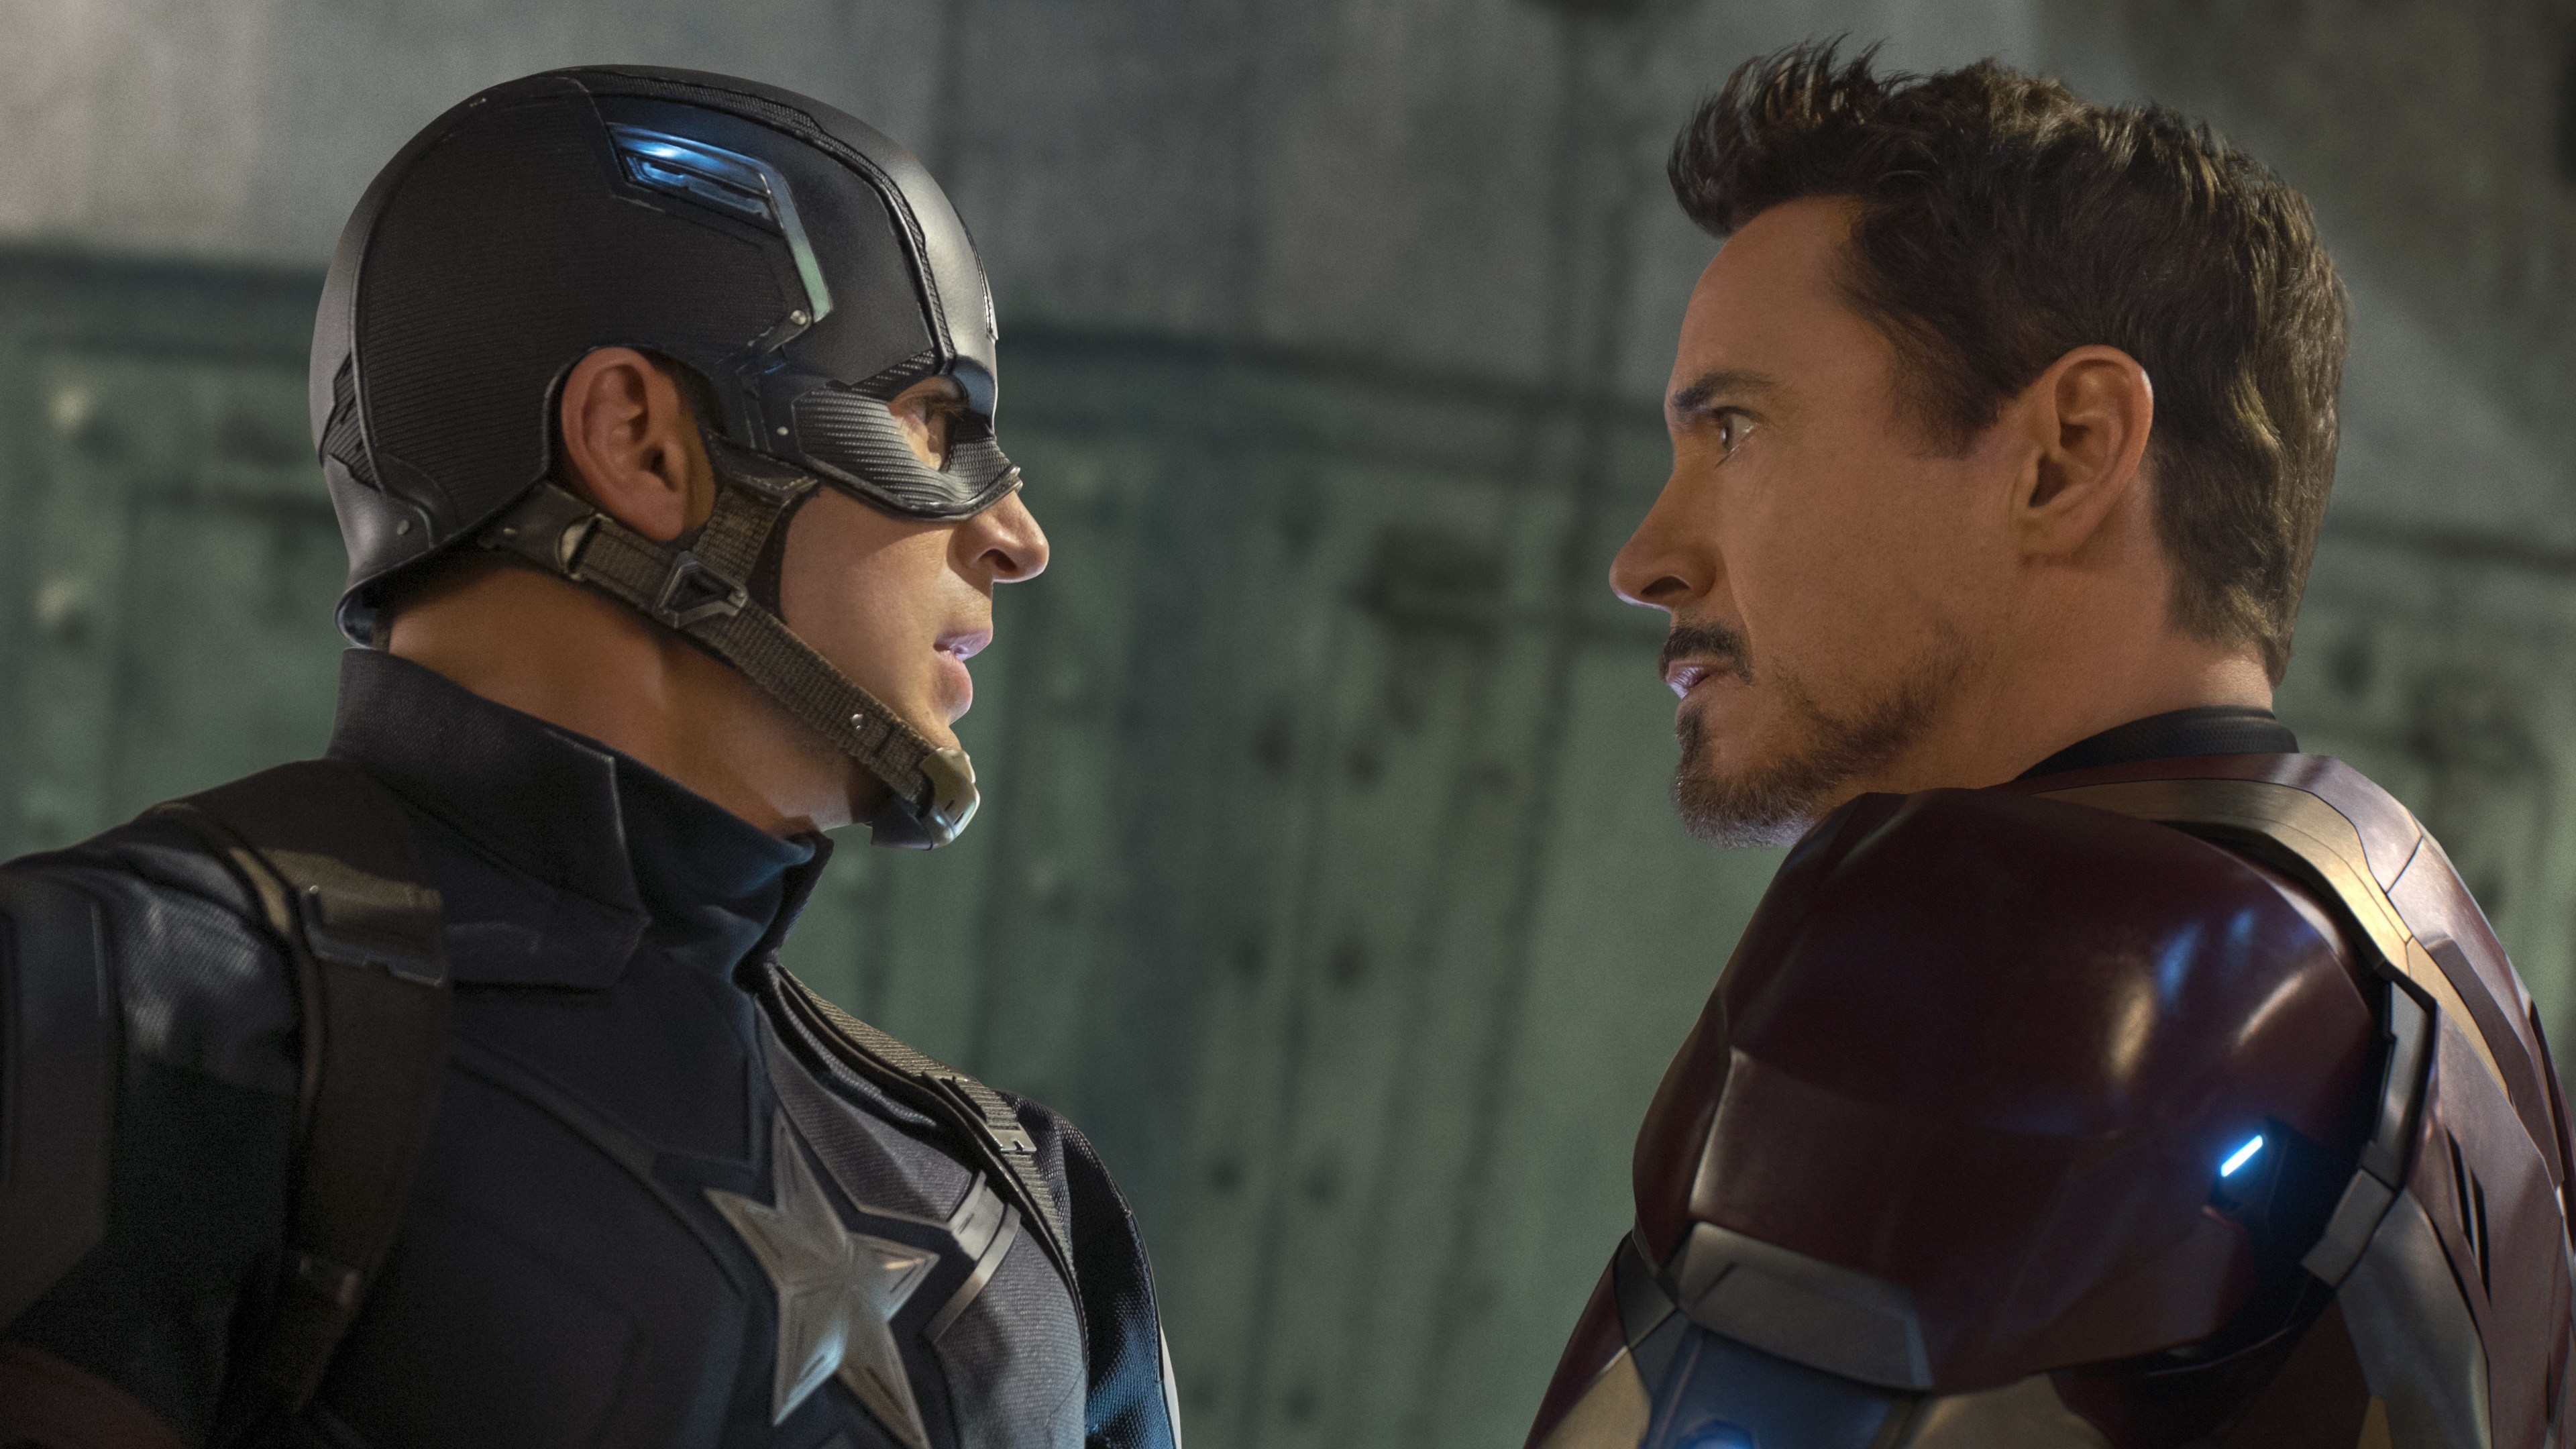 iron man v captain america 1536363595 - Iron Man V Captain America - super heroes wallpapers, movies wallpapers, iron man wallpapers, captain america wallpapers, captain america civil war wallpapers, 2016 movies wallpapers